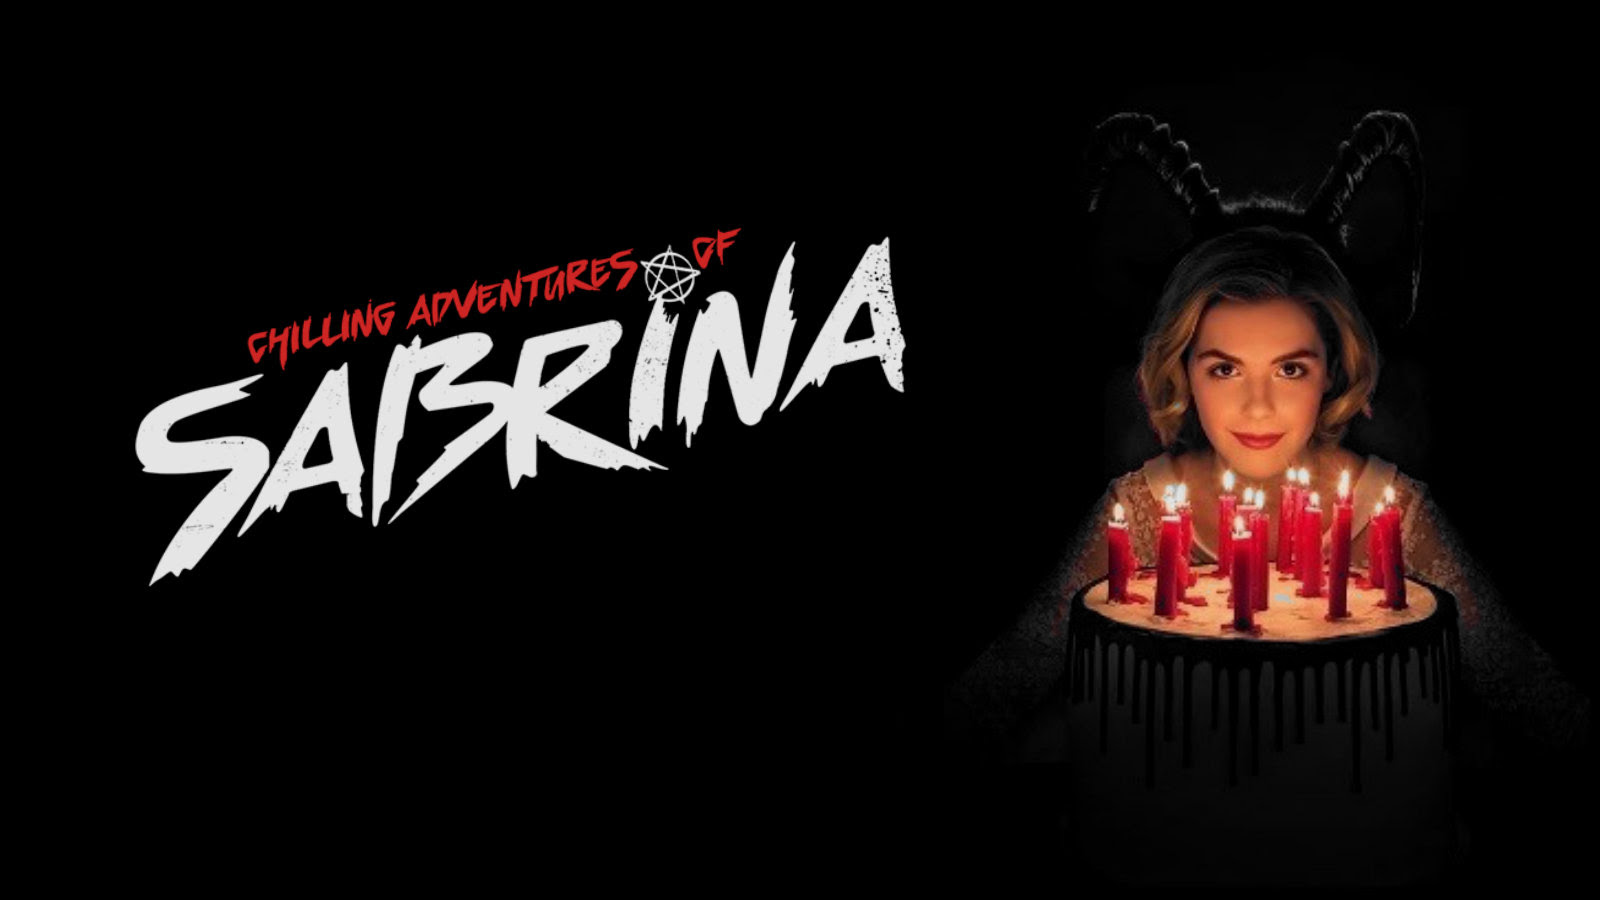 Chilling Adventures Of Sabrina Chilling Adventures Of Sabrina